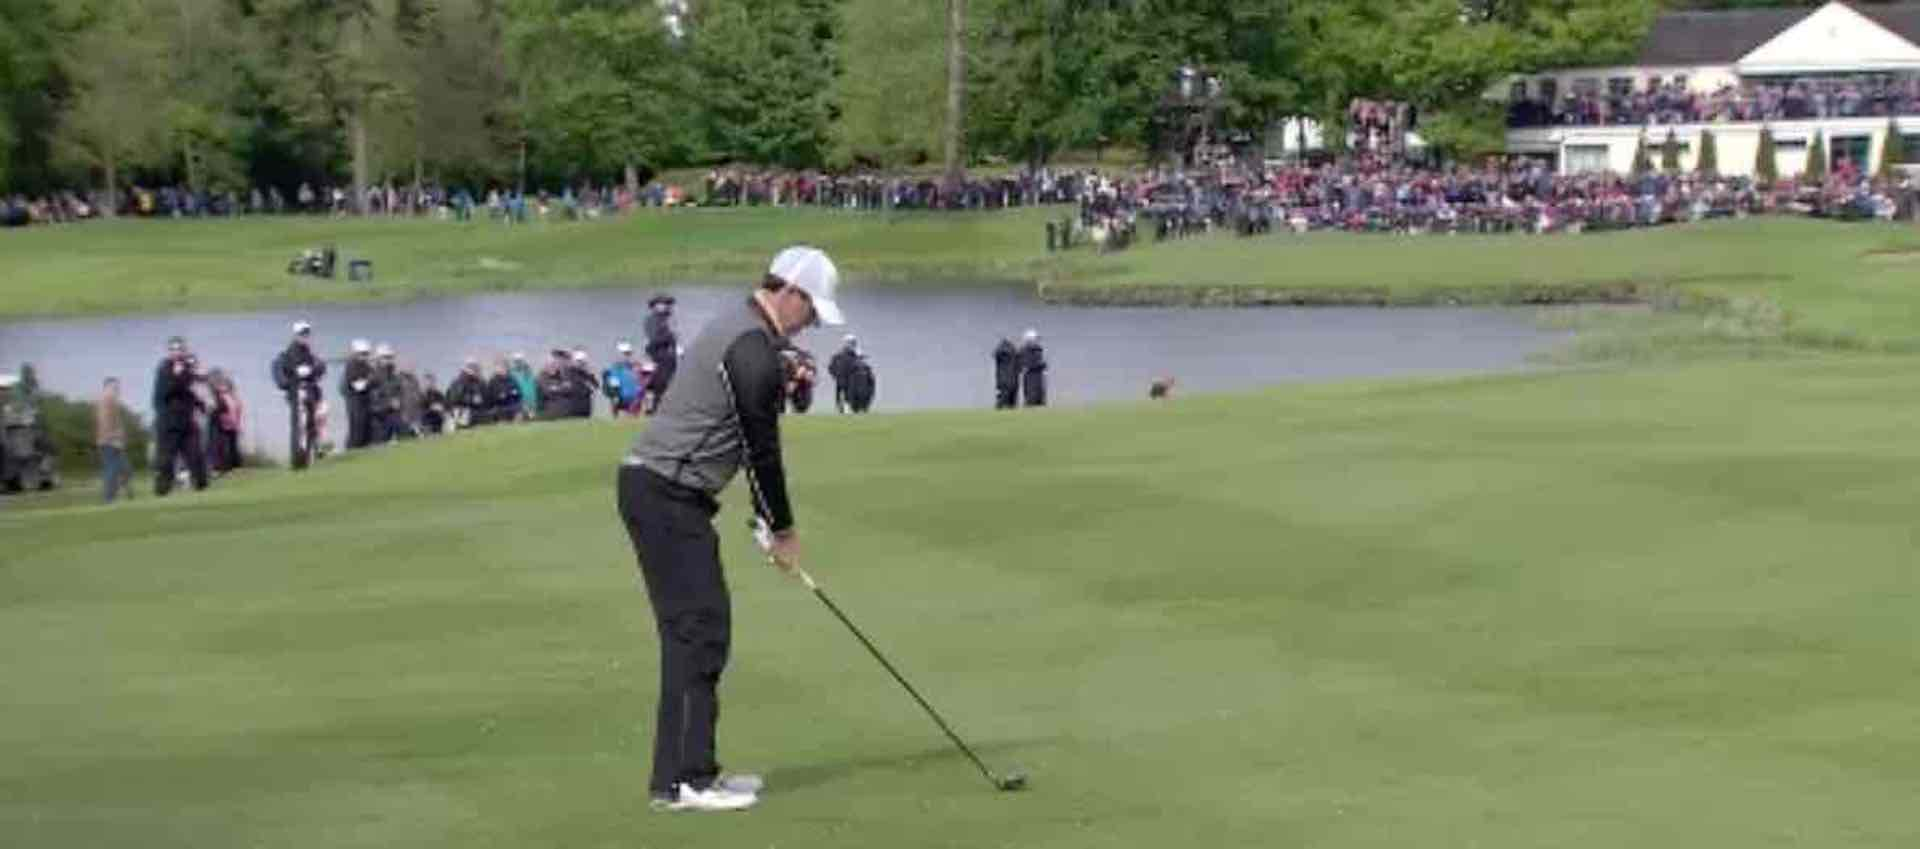 Rory McIlroy wins European Tour shot of the year